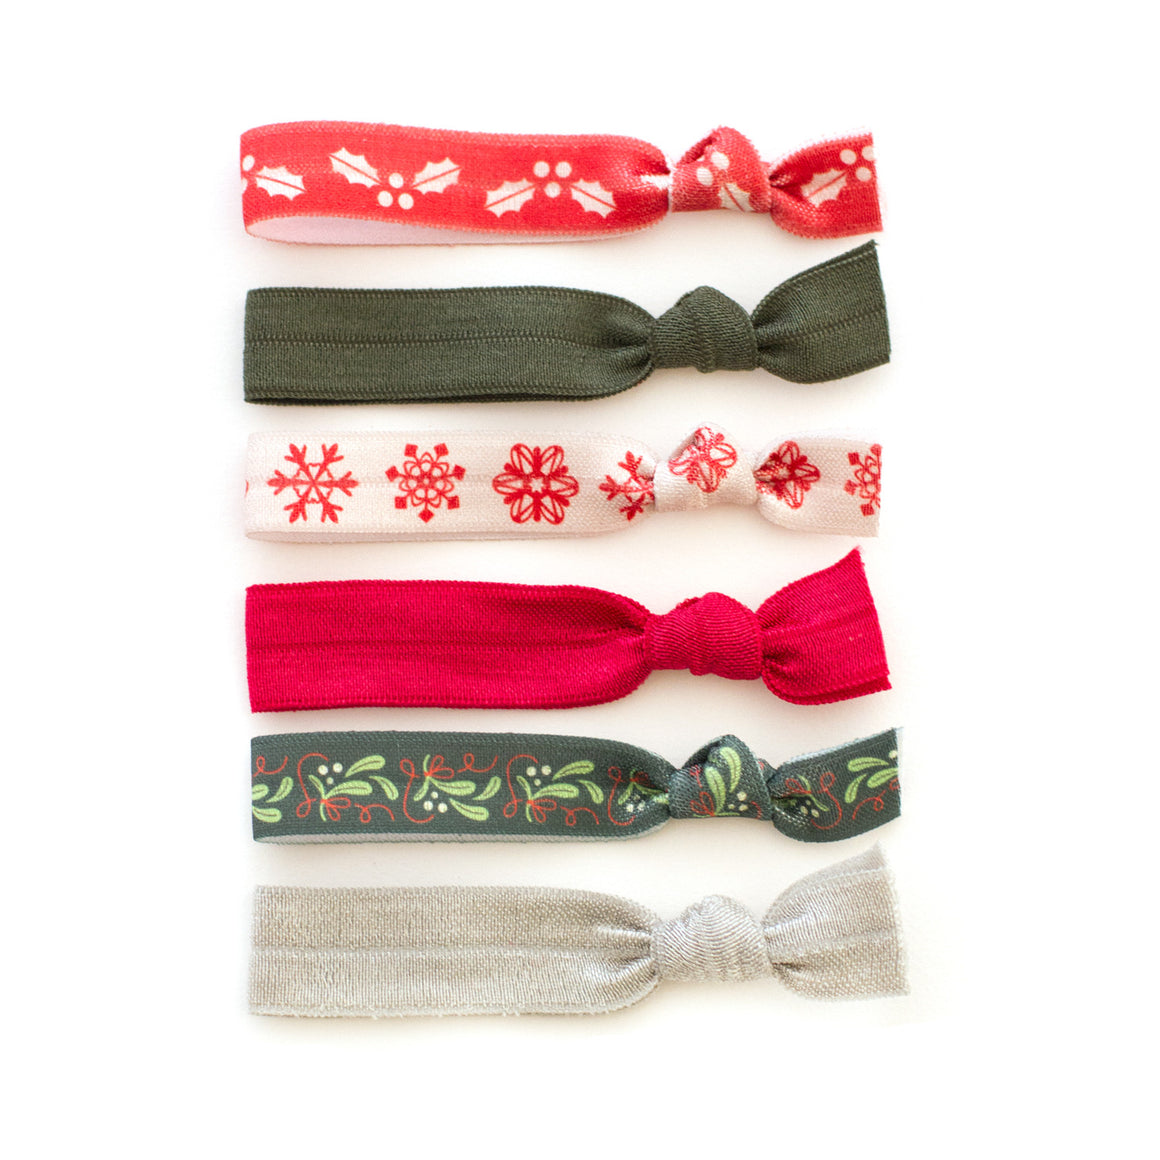 holly snowflake mistletoe christmas themed hair tie package by mane message